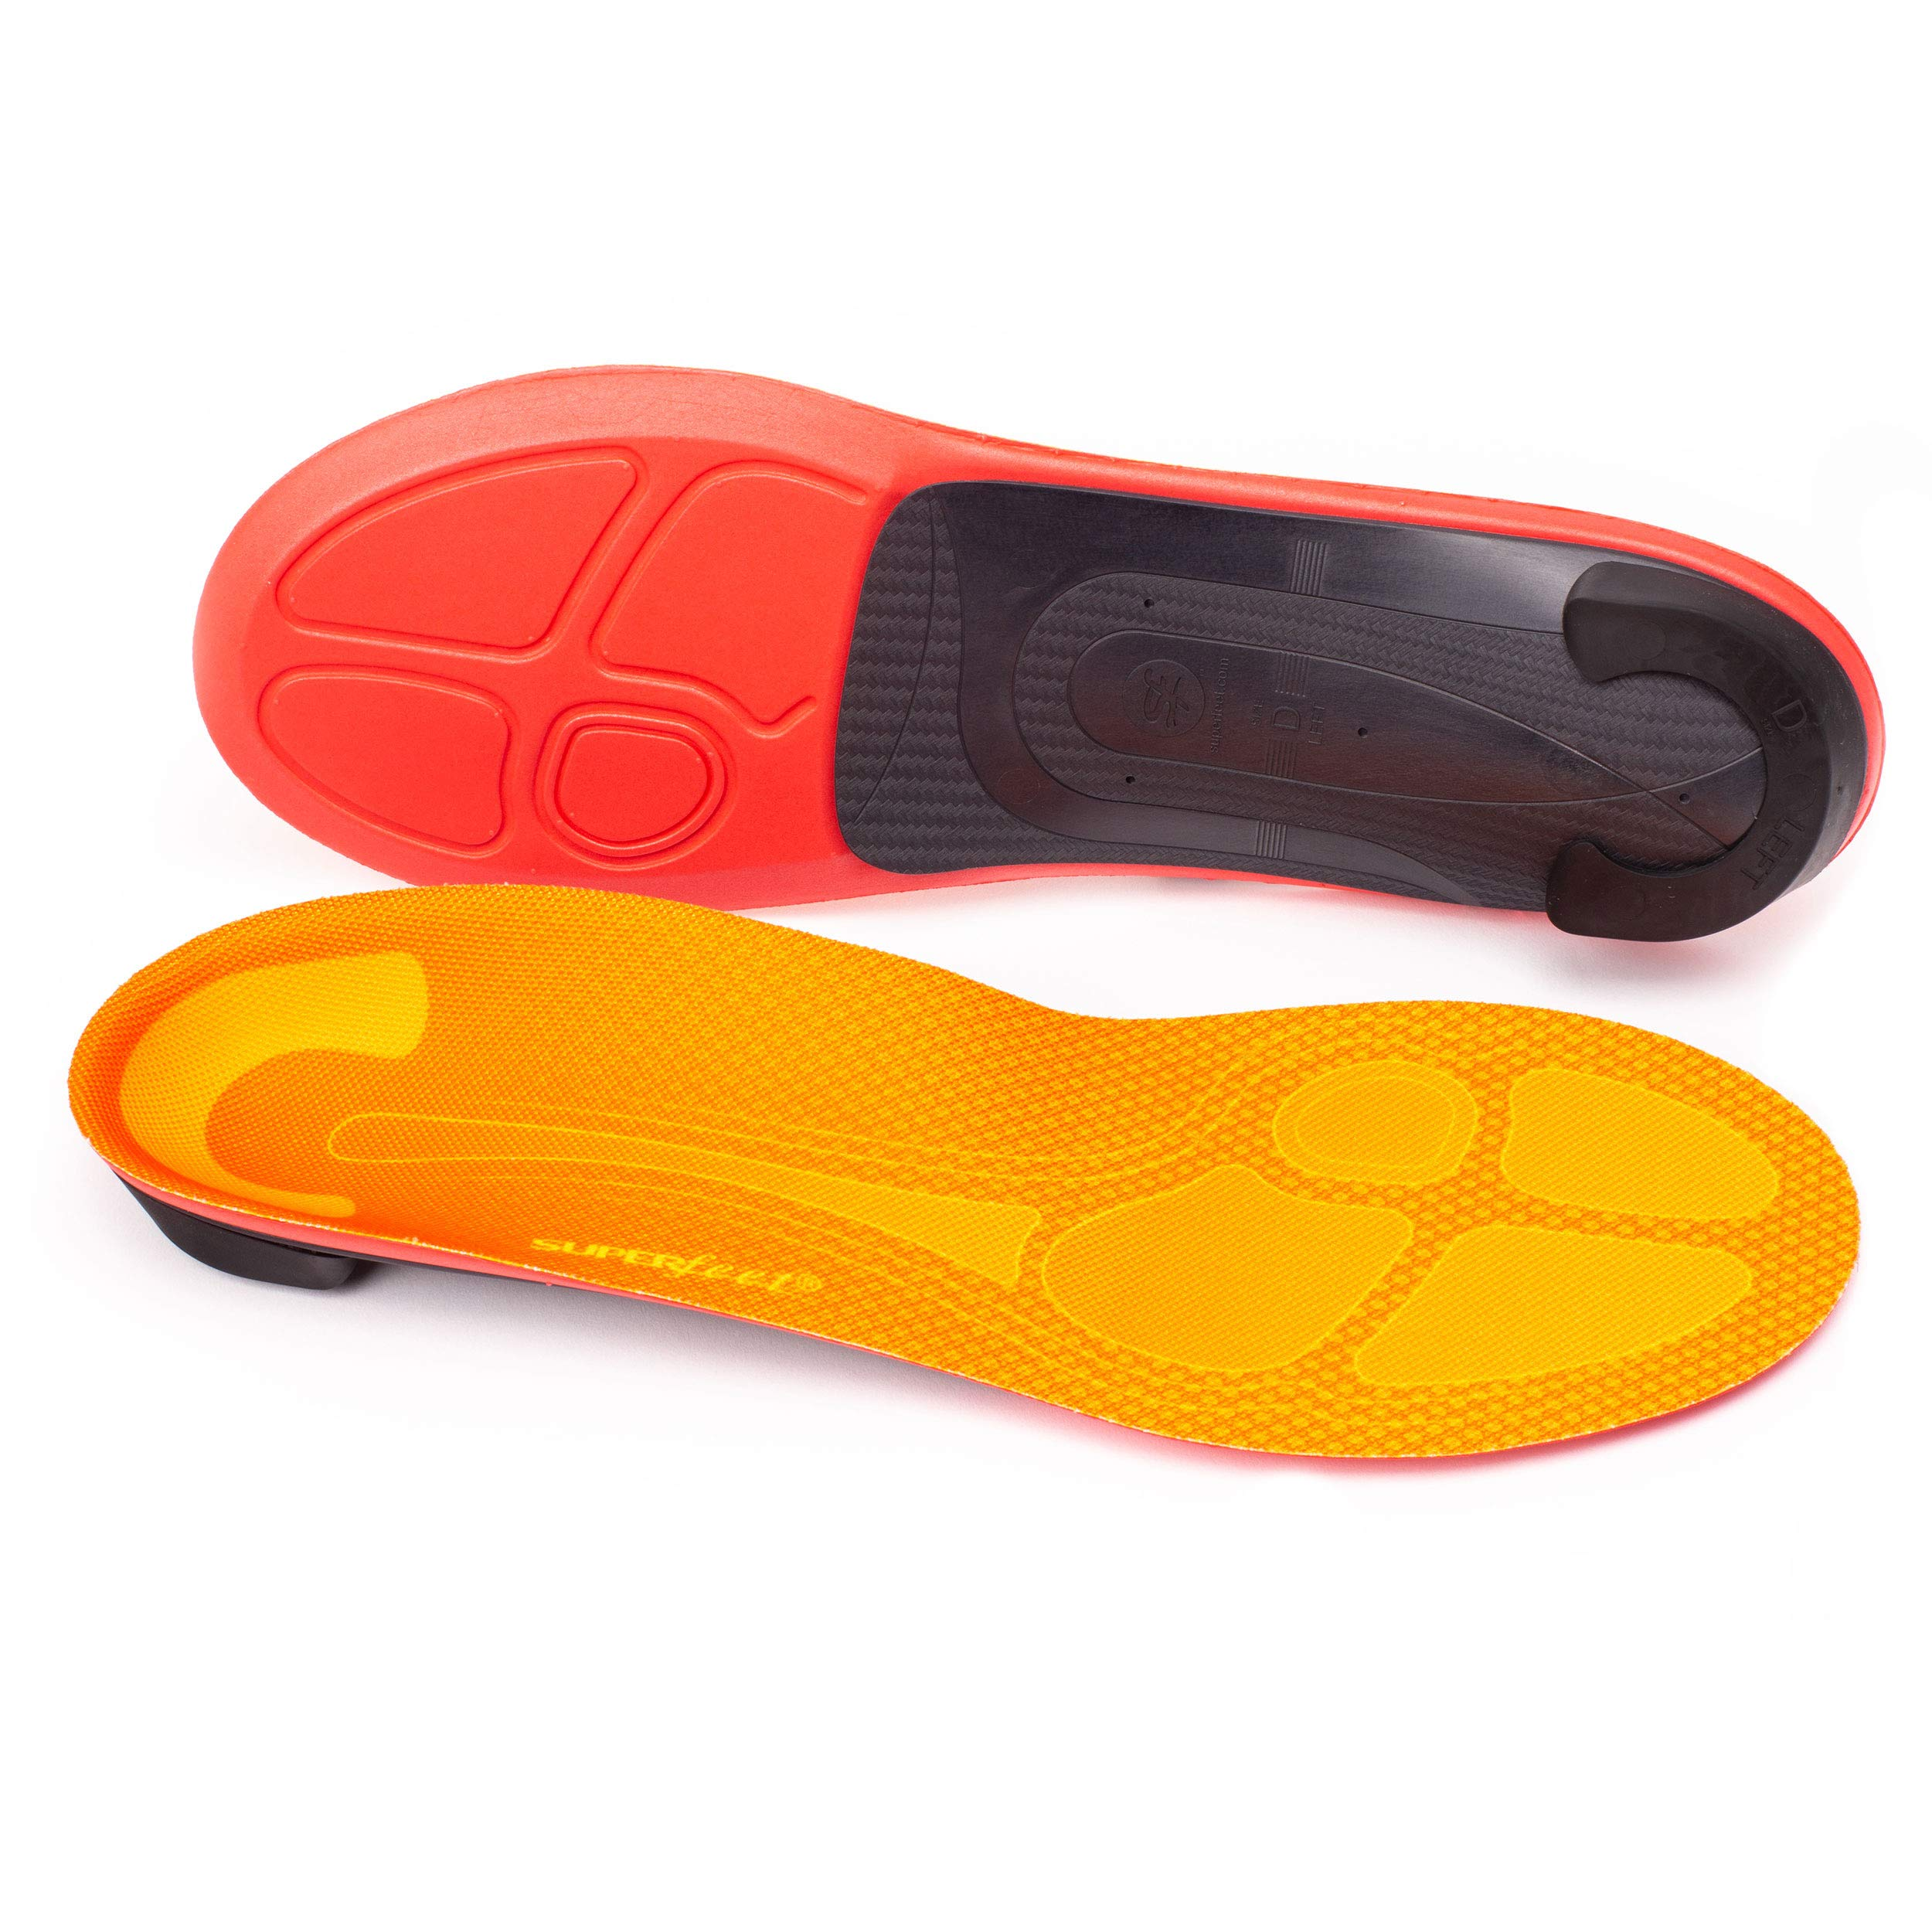 Superfeet Run Pain Relief Insoles, Customizable Heel Stability Professional-Grade Orthotic Insert for Maximum Support, Tangerine, D: 8.5-10 US Womens / 7.5-9 US Mens